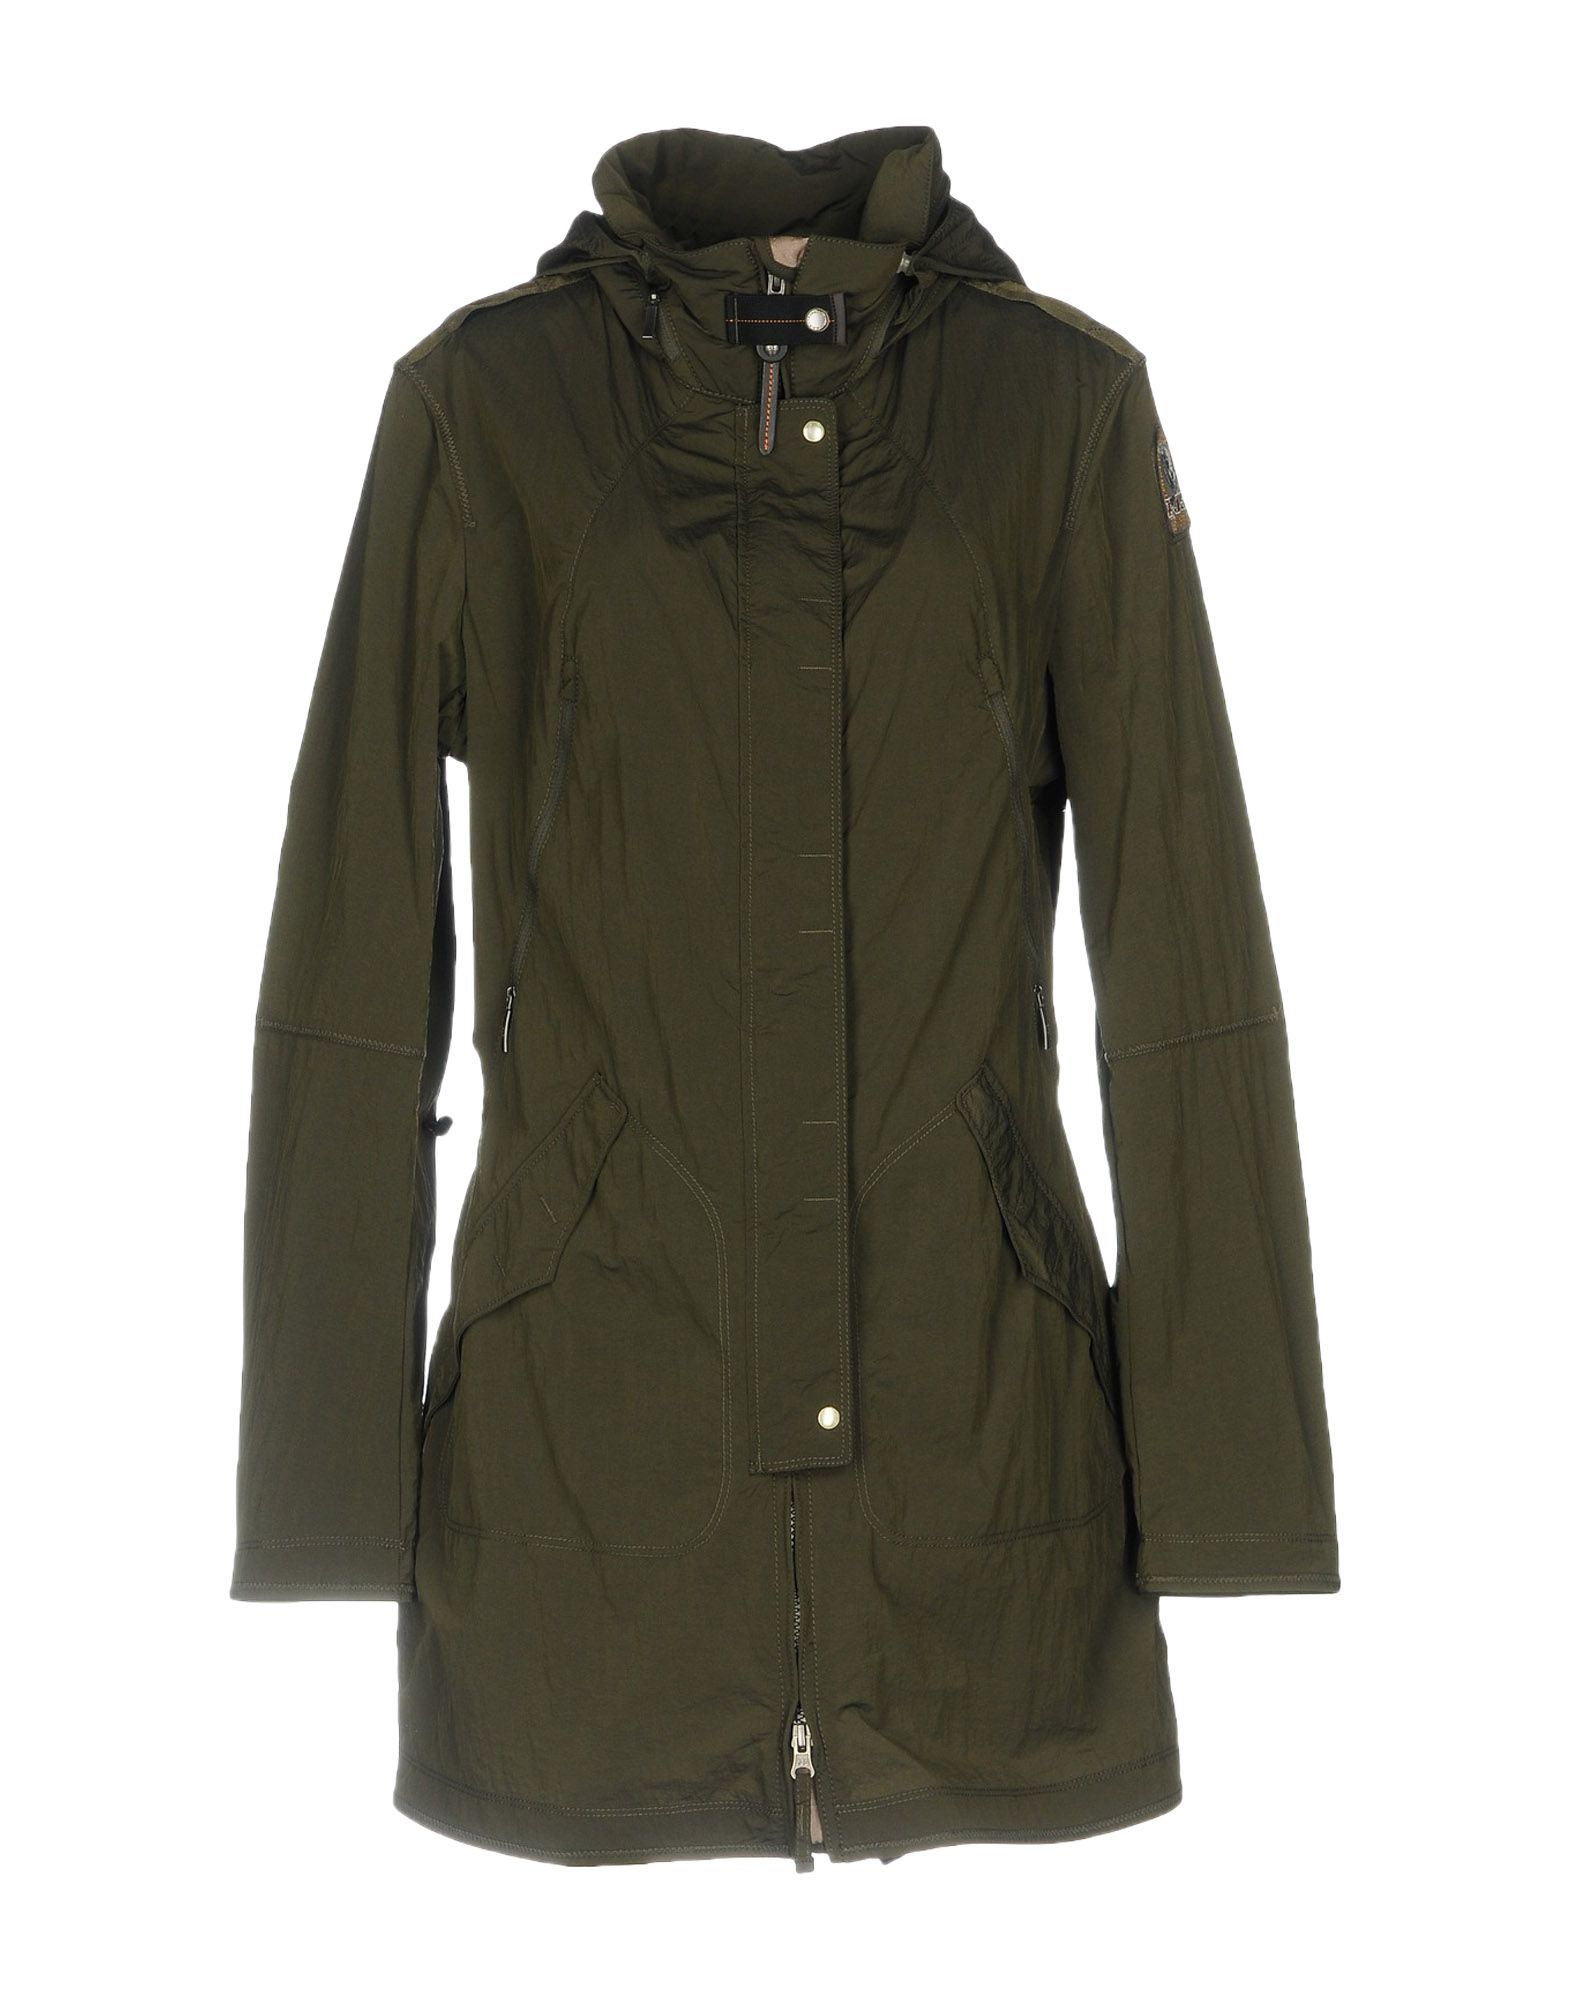 PARAJUMPERS JACKETS, MILITARY GREEN